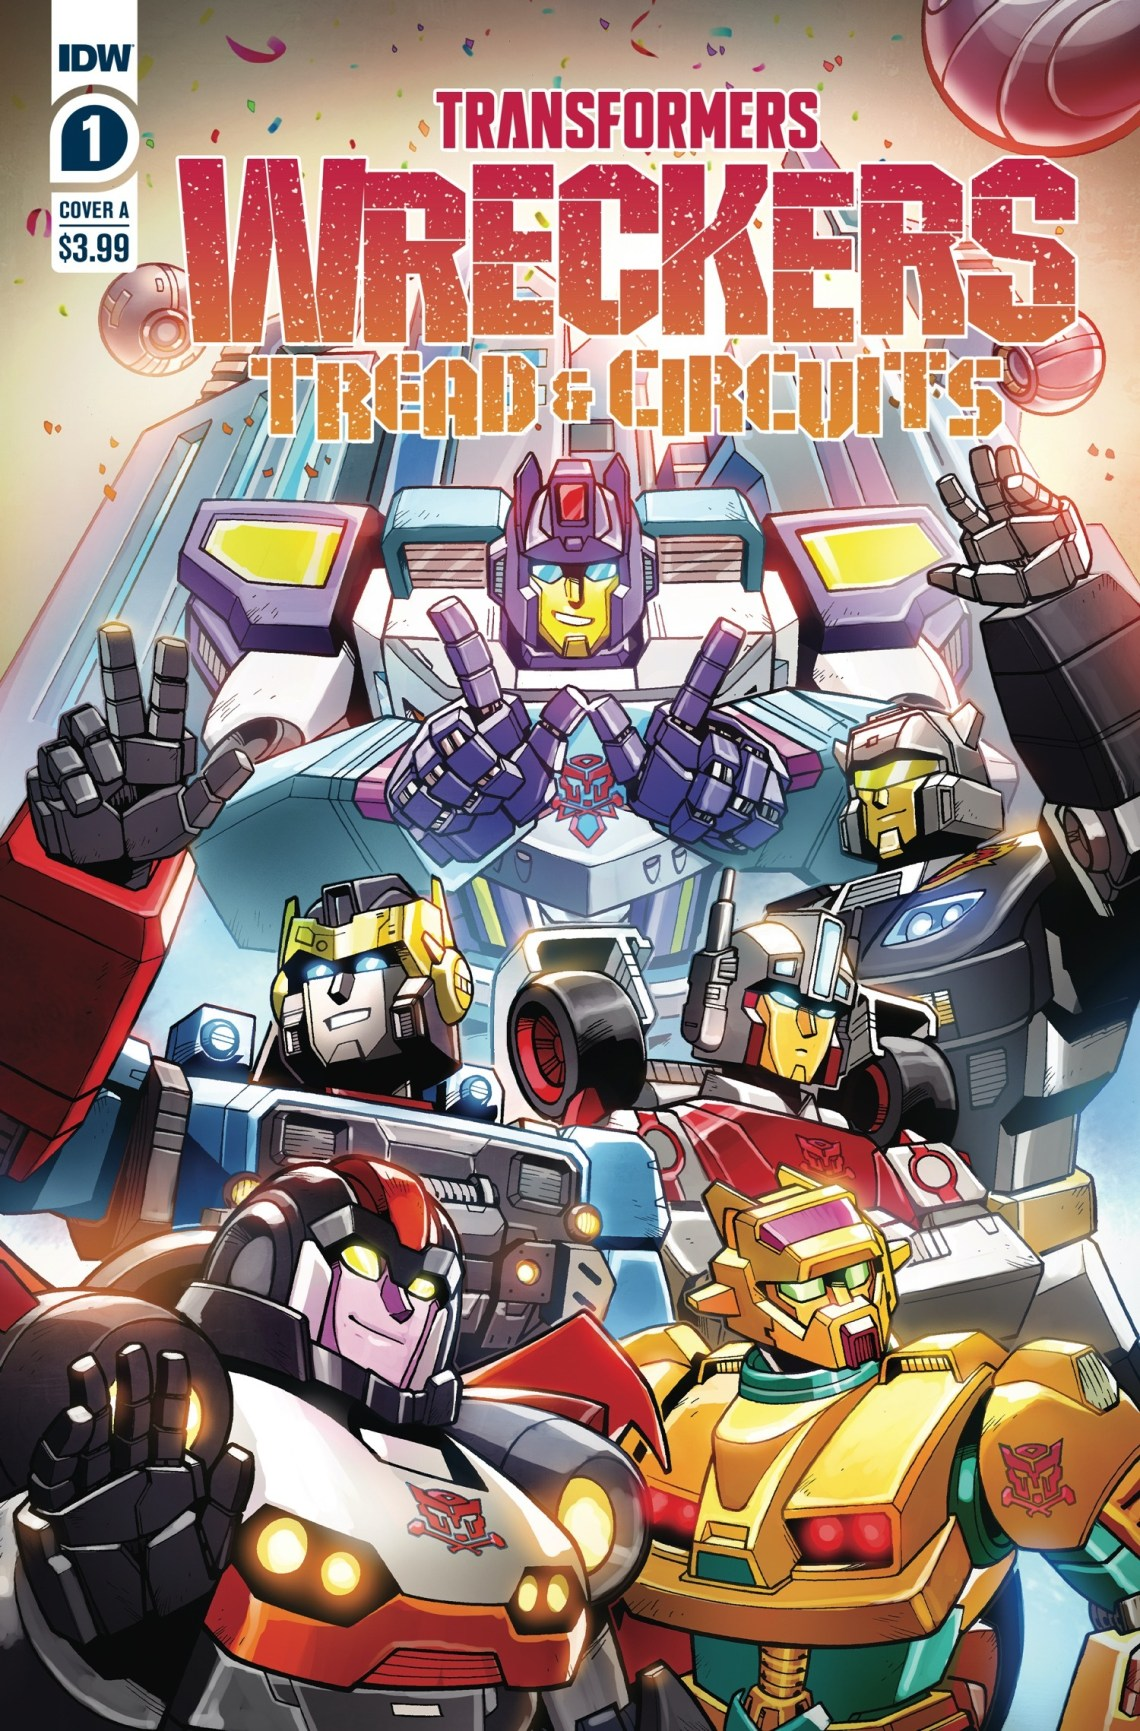 TRANSFORMERS: WRECKERS - TREAD & CIRCUITS Comic Book Series Coming in October from IDW Publishing